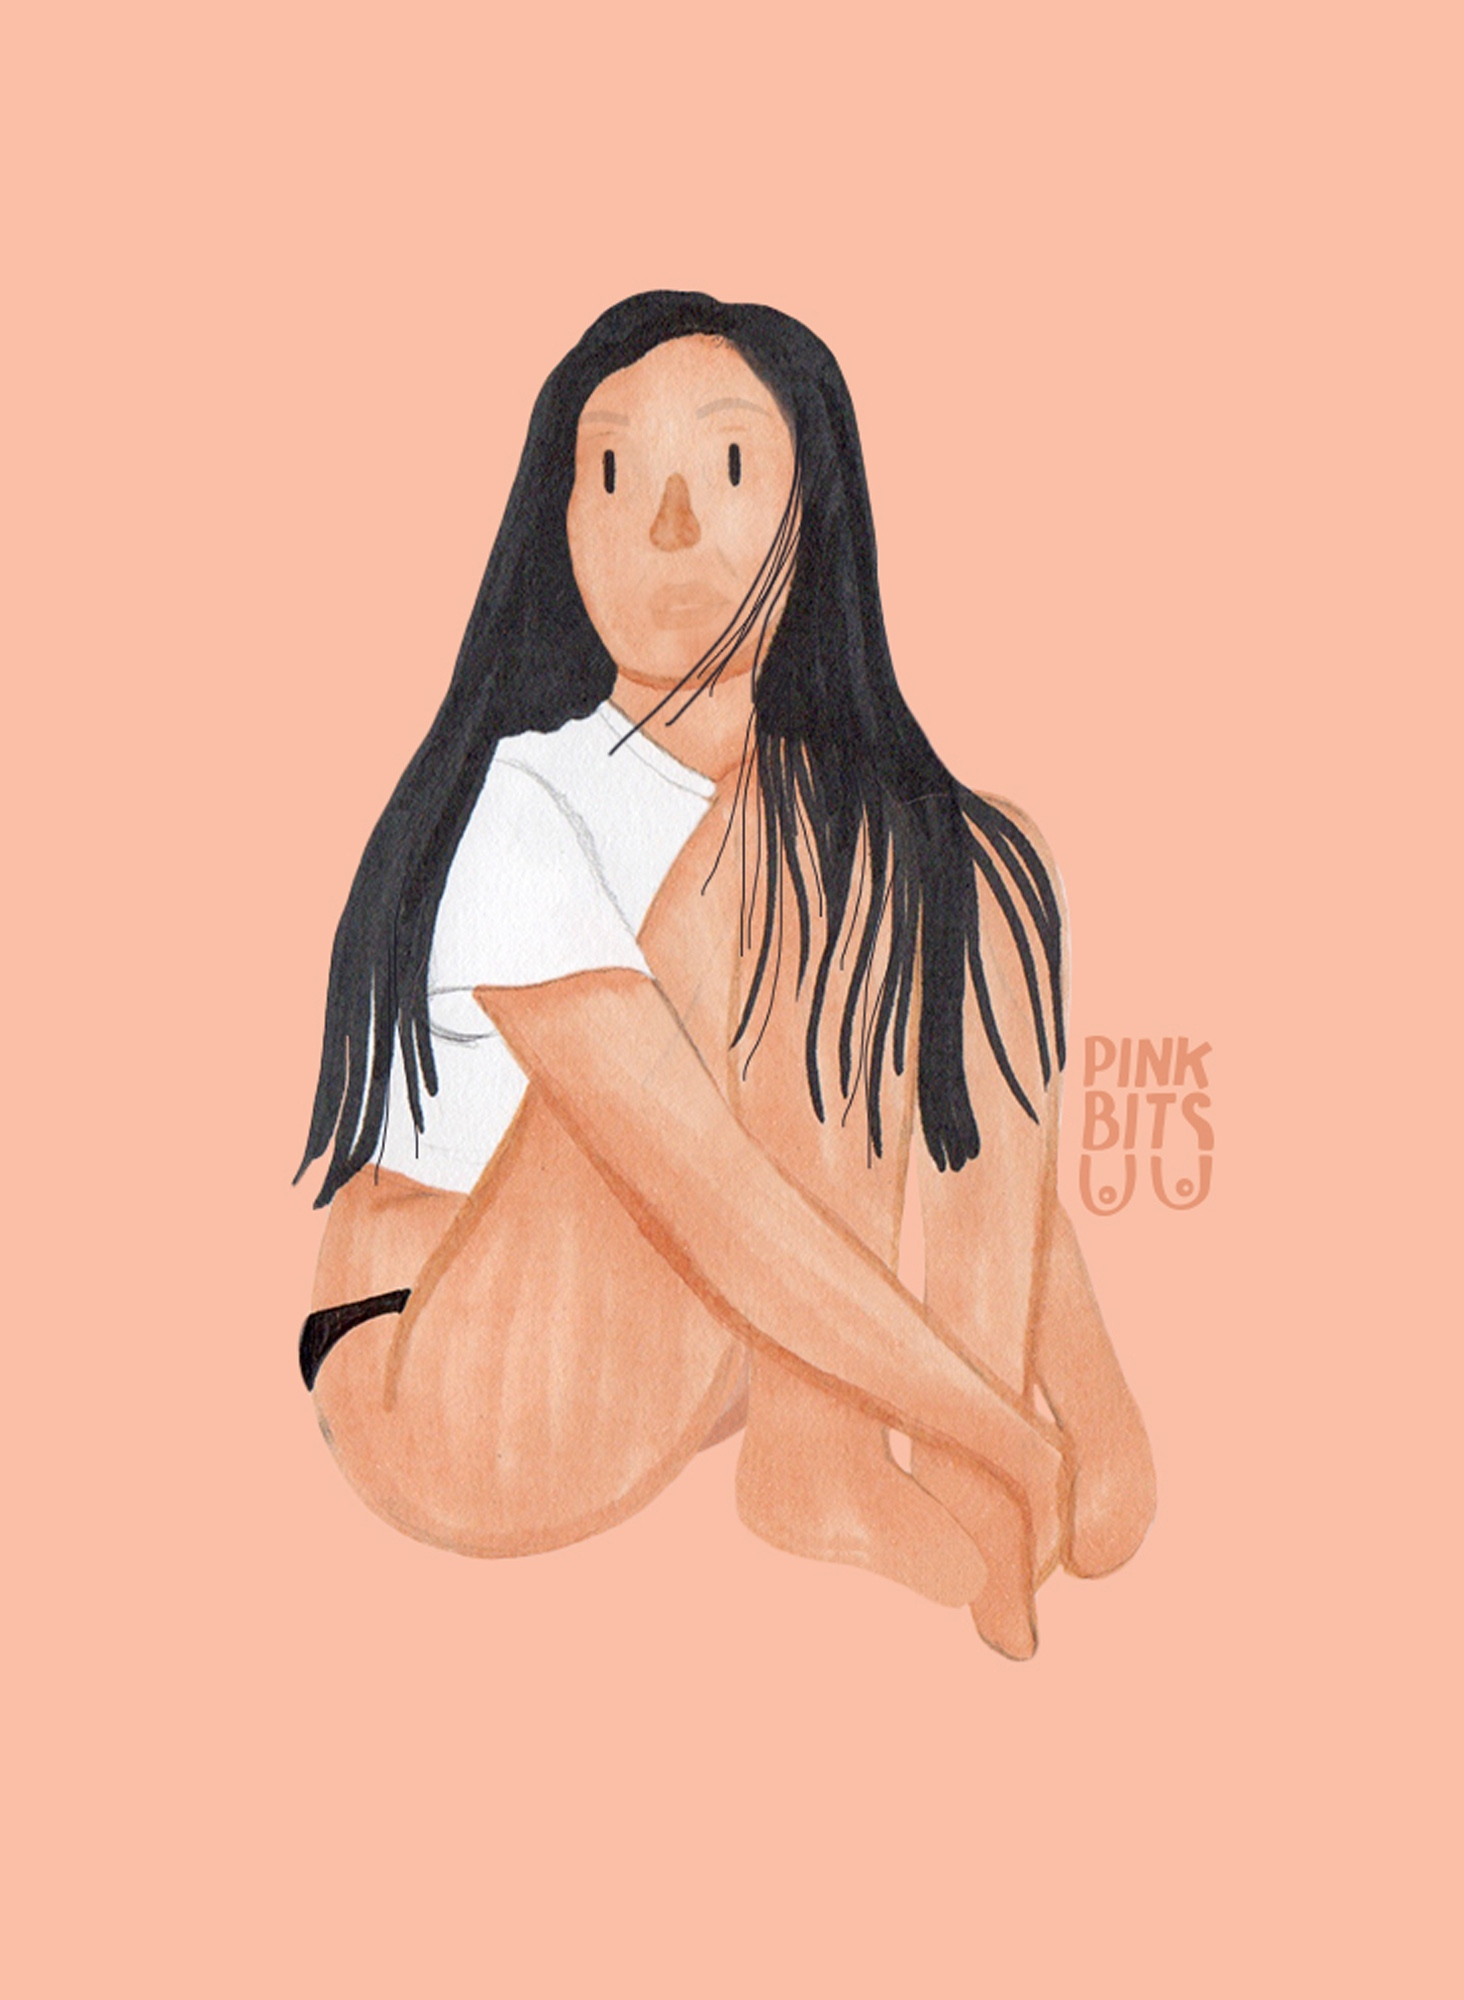 Pink Bits did this illustration of Ailene Wu based on my original photography. Super cute!